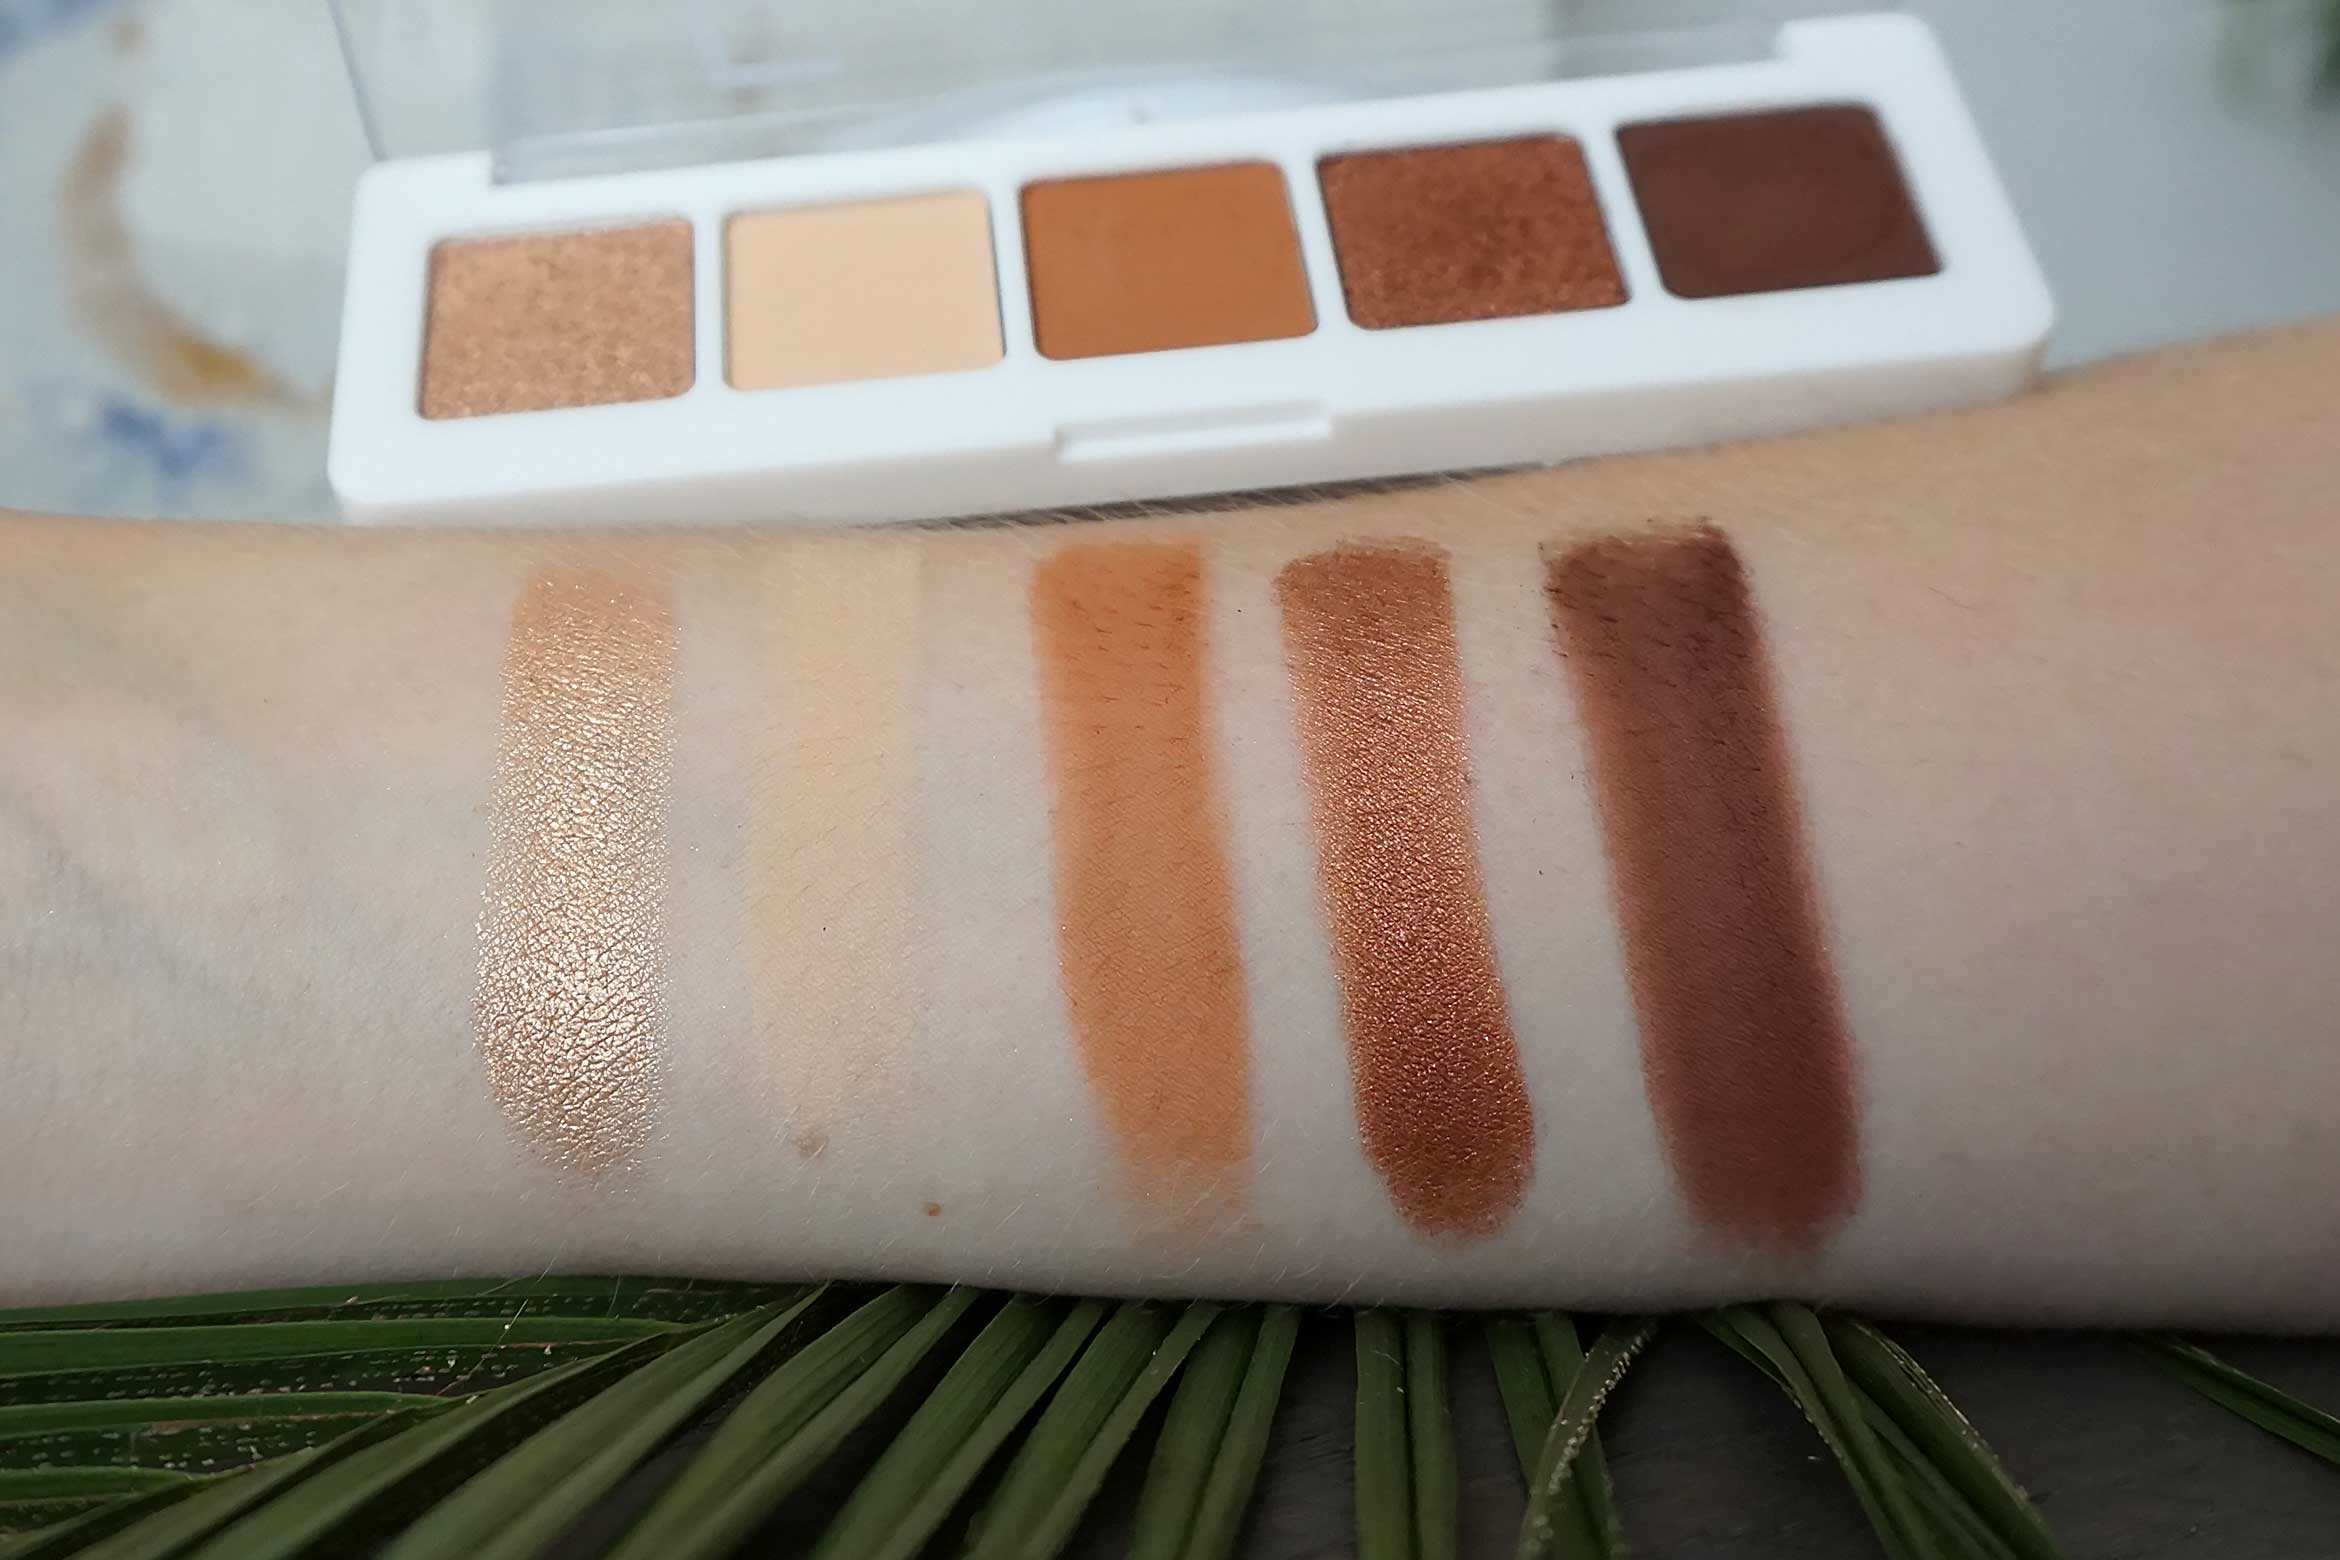 catrice 5 in a box mini eyeshadow palette swatch 030 warm spice look review